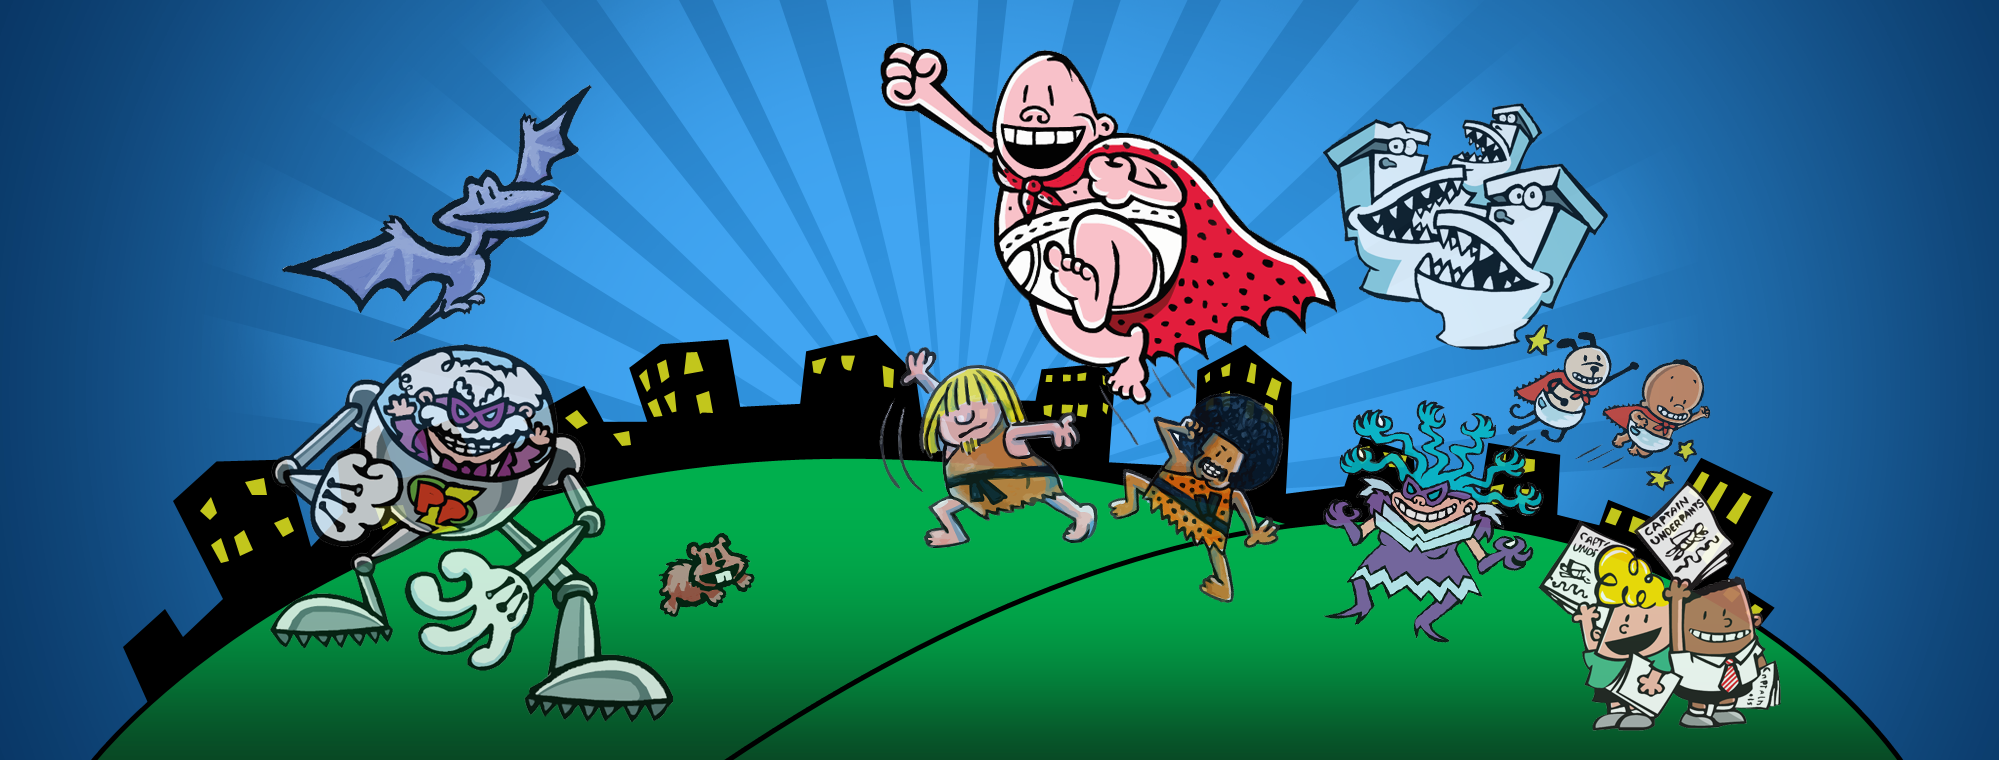 This is an image of Transformative Images of Captain Underpants